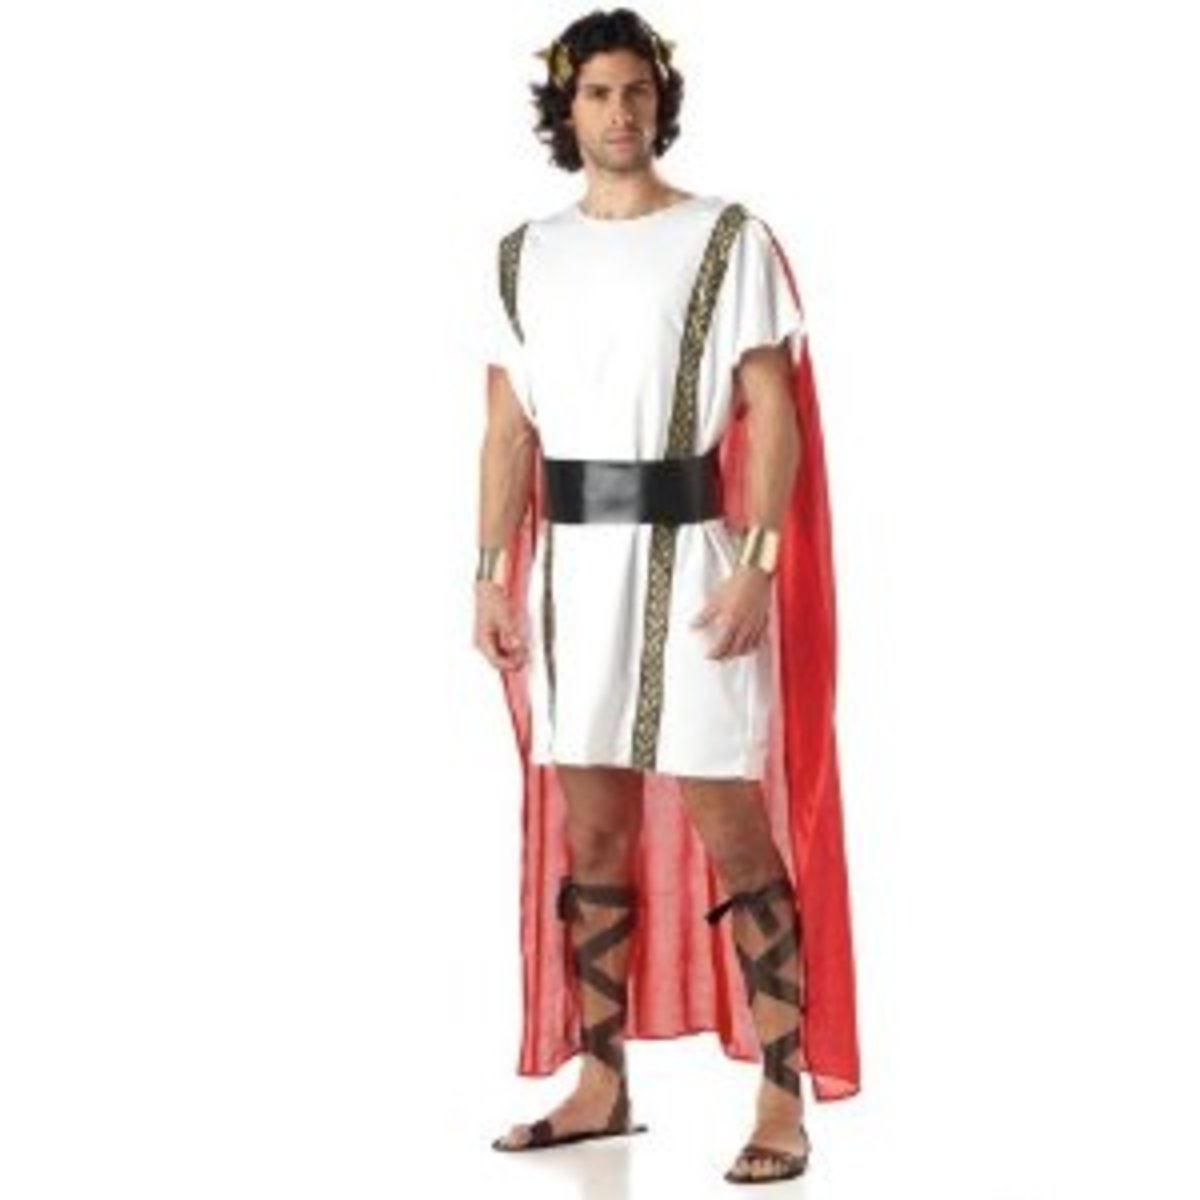 Hottest Hallweencostume for couples - Greek God and Goddess